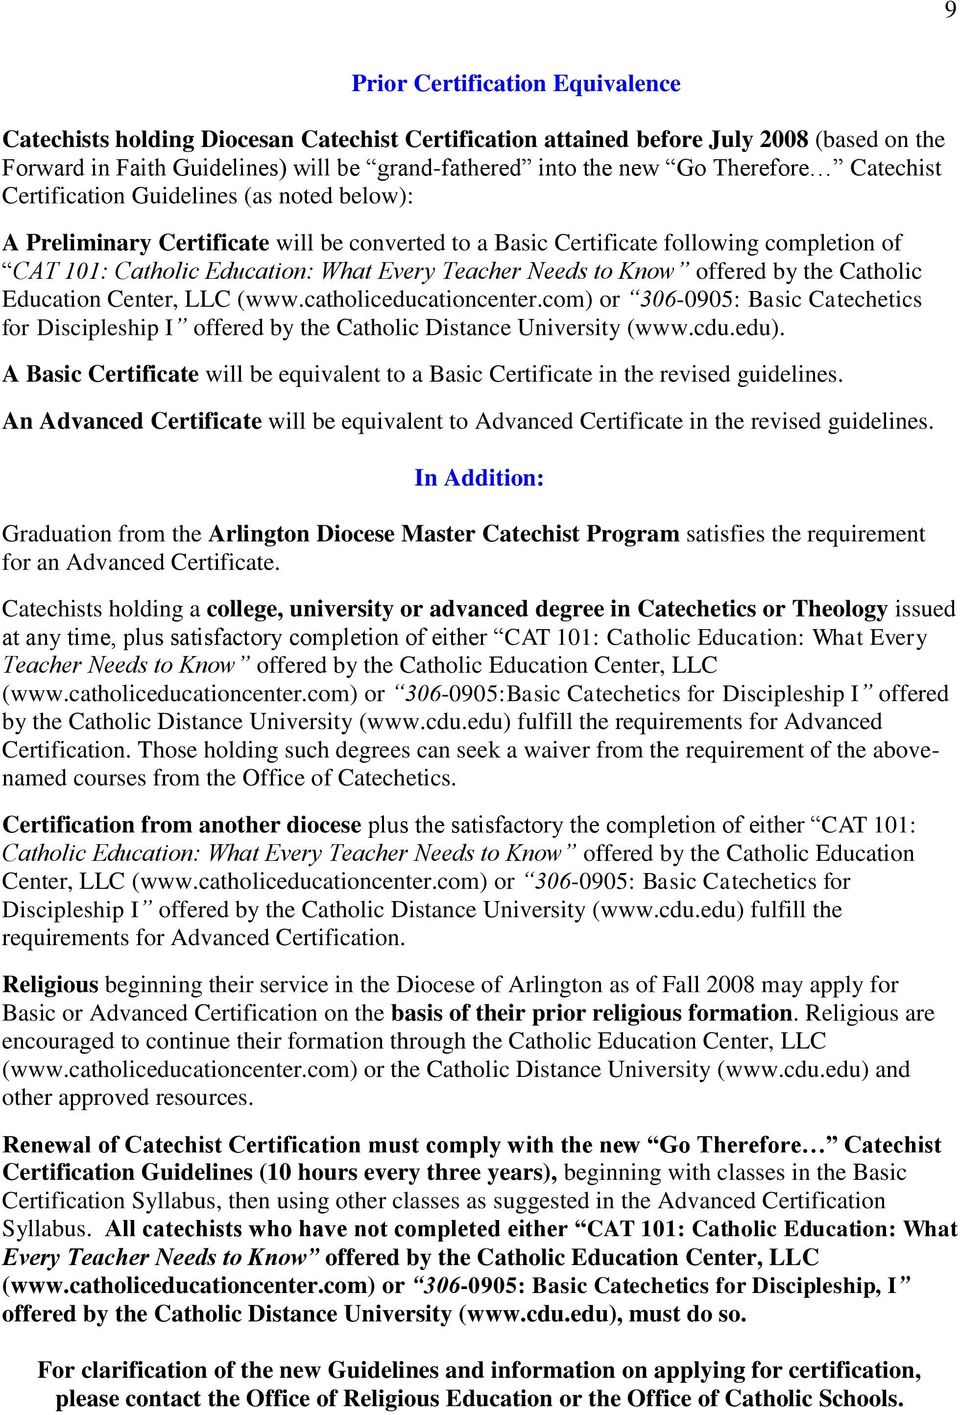 Teacher Needs to Know offered by the Catholic Education Center, LLC (www.catholiceducationcenter.